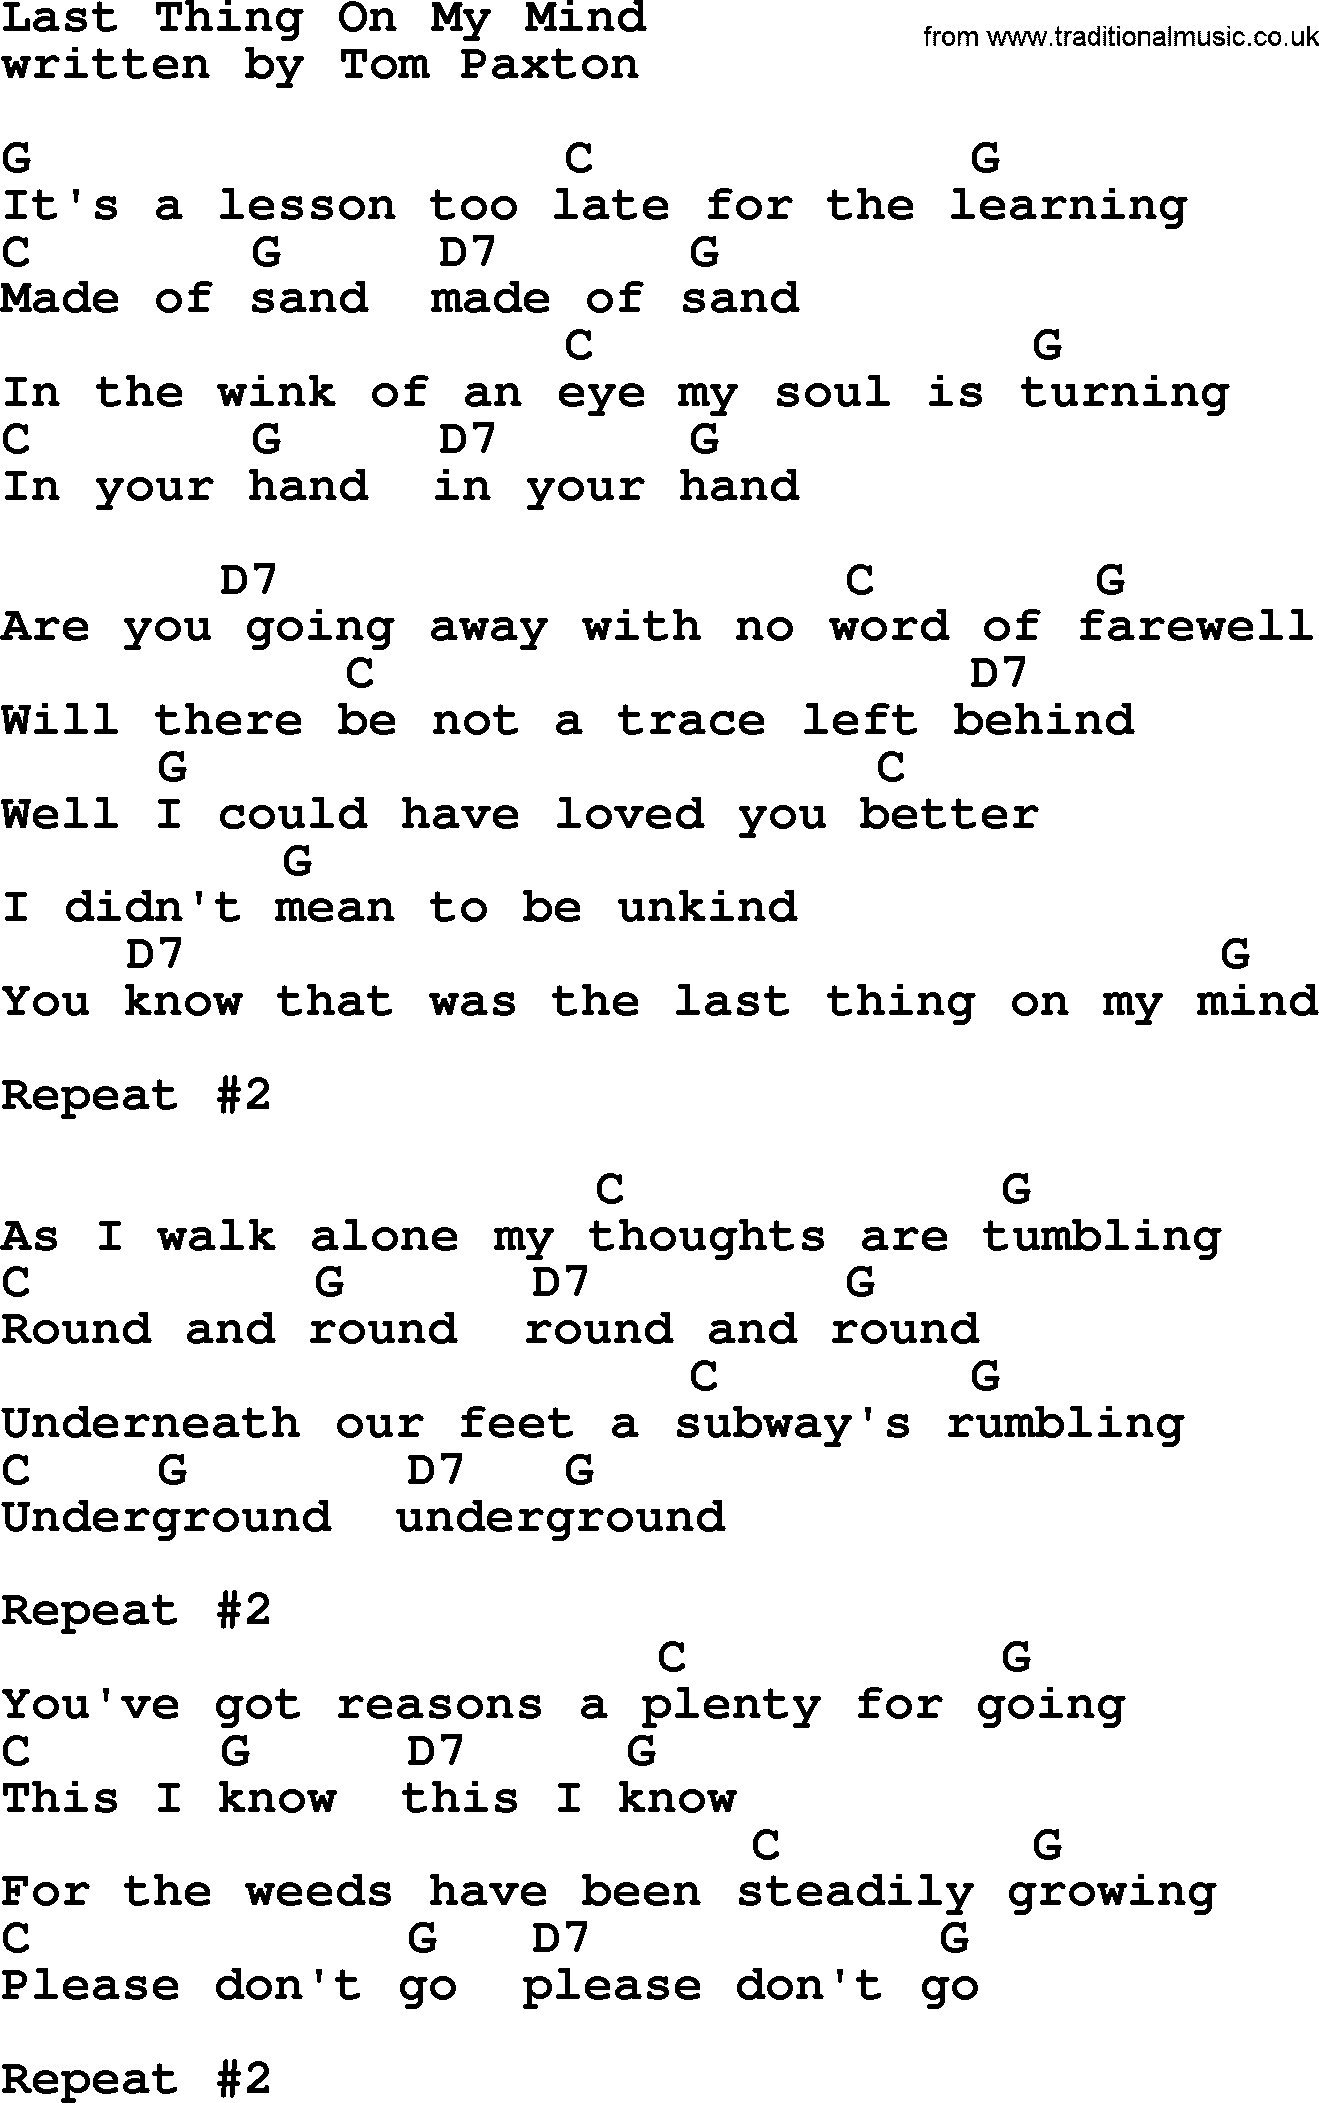 Dolly Parton Song Last Thing On My Mind Lyrics And Chords